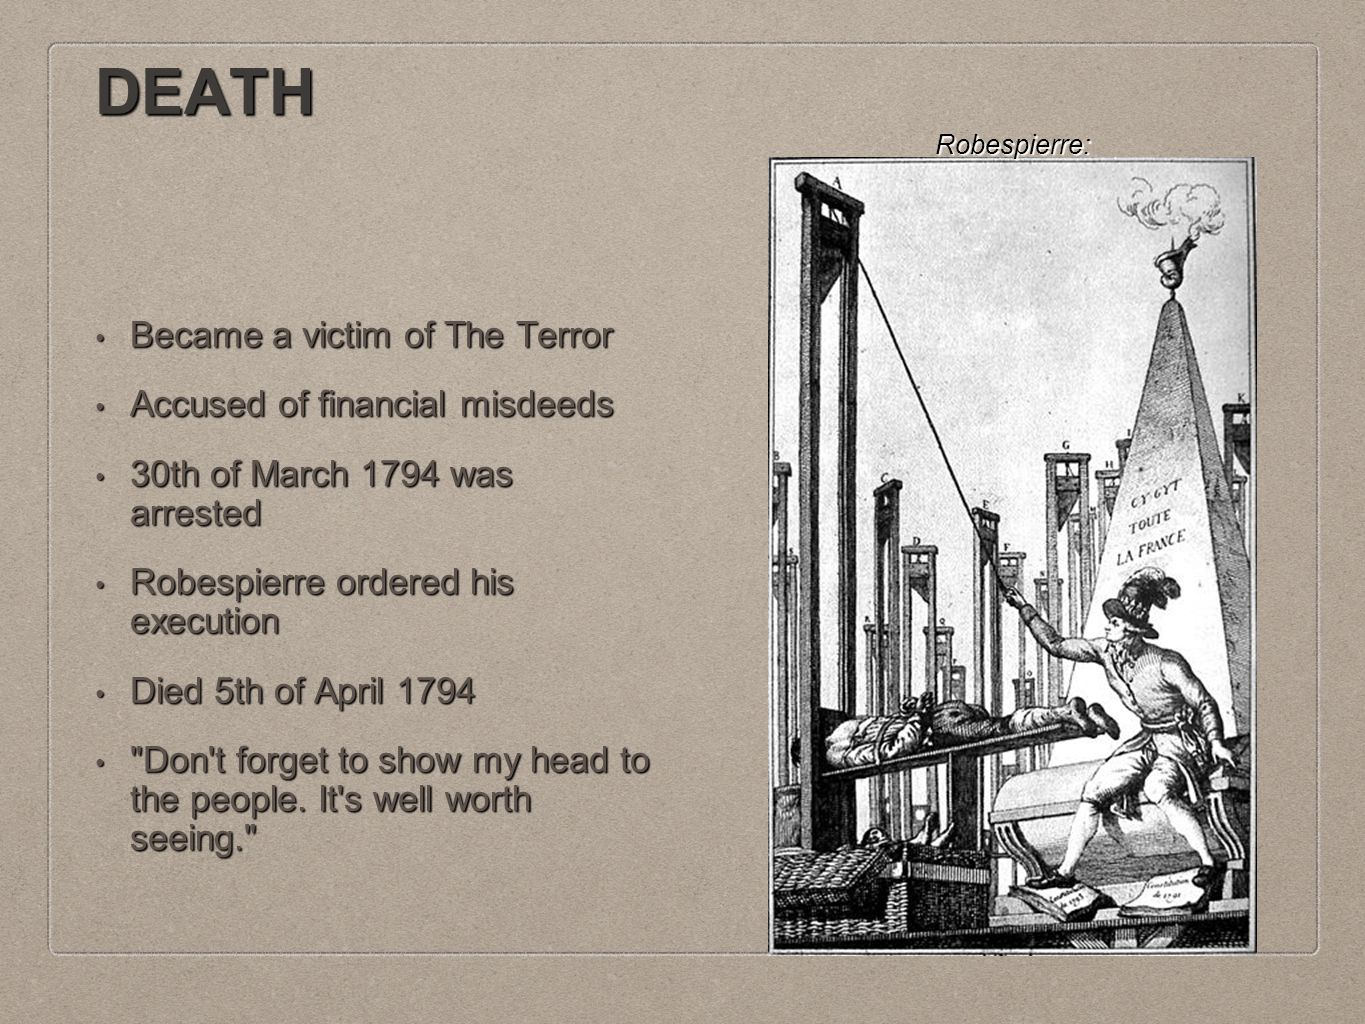 DEATH Became a victim of The Terror Became a victim of The Terror Accused of financial misdeeds Accused of financial misdeeds 30th of March 1794 was a